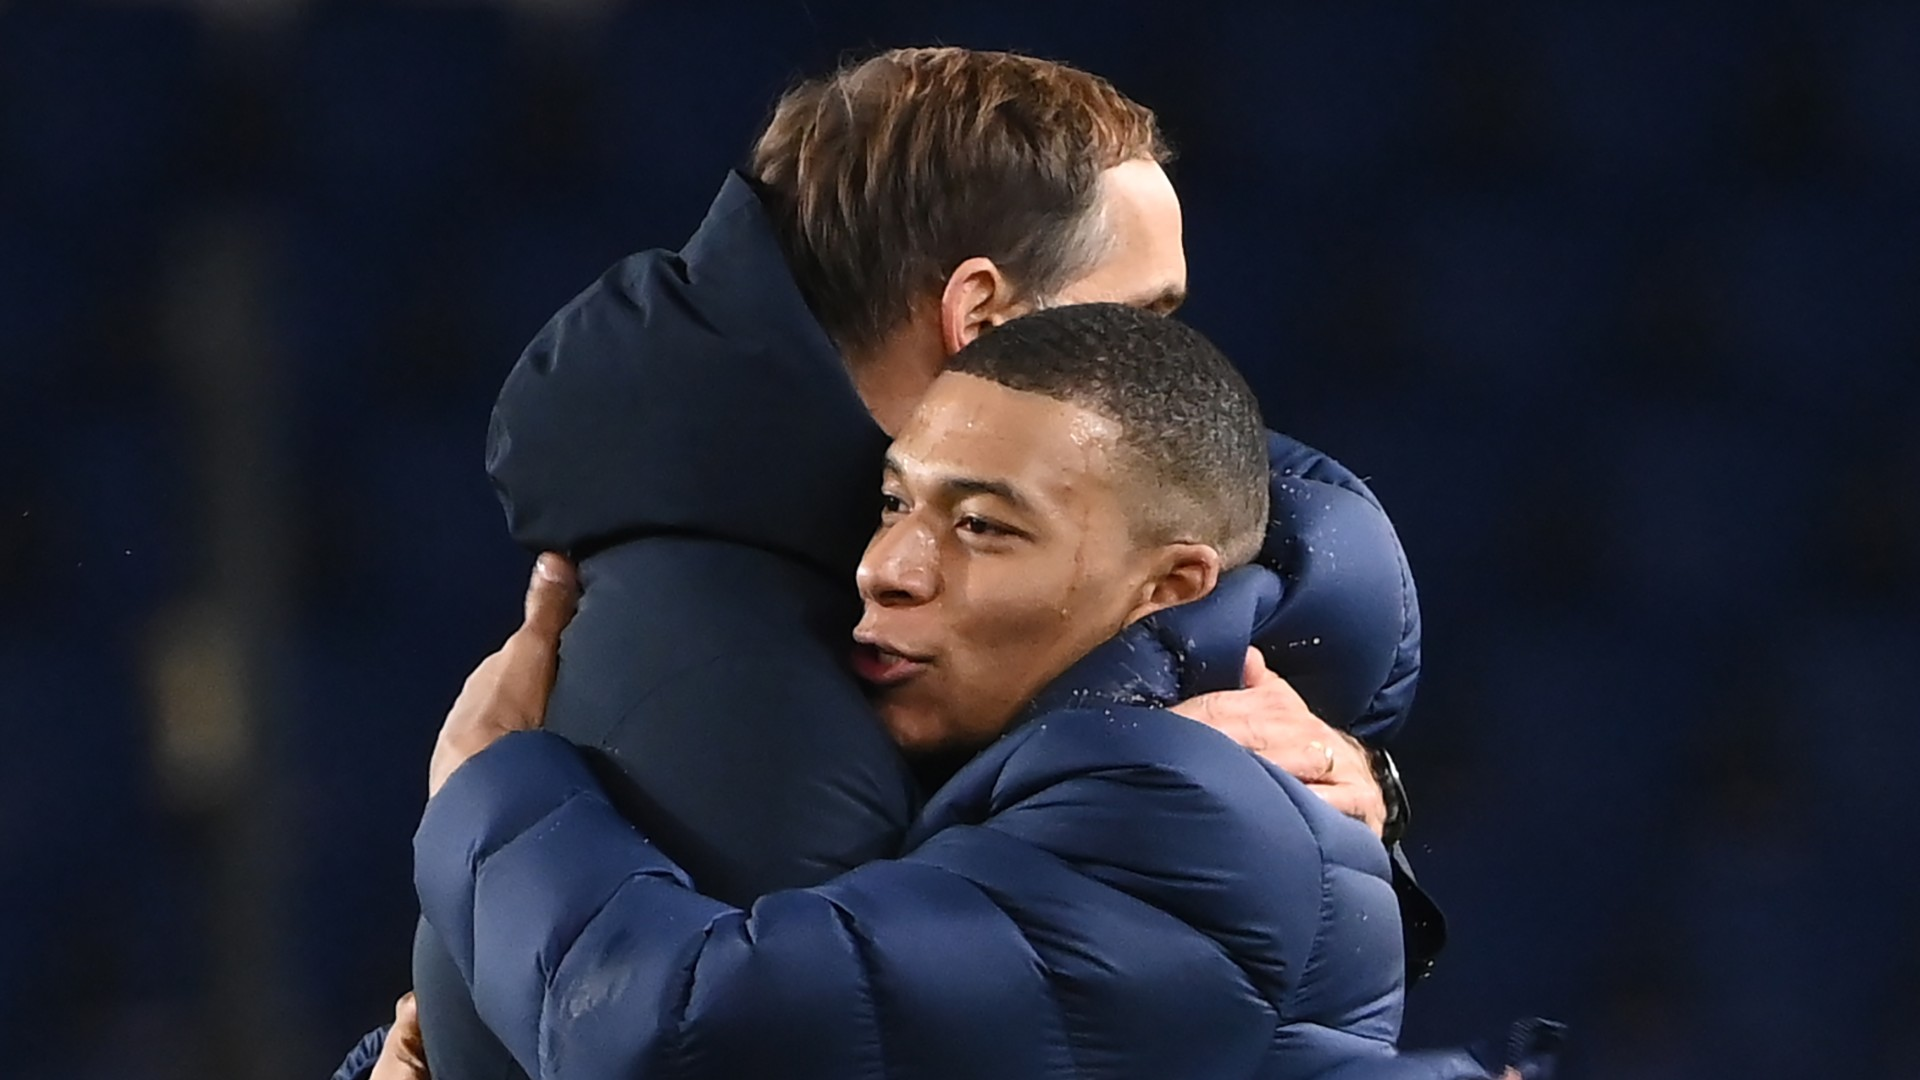 It is sadly the law of football - Mbappe pays tribute to outgoing Tuchel after Paris Saint-Germain boss sacked